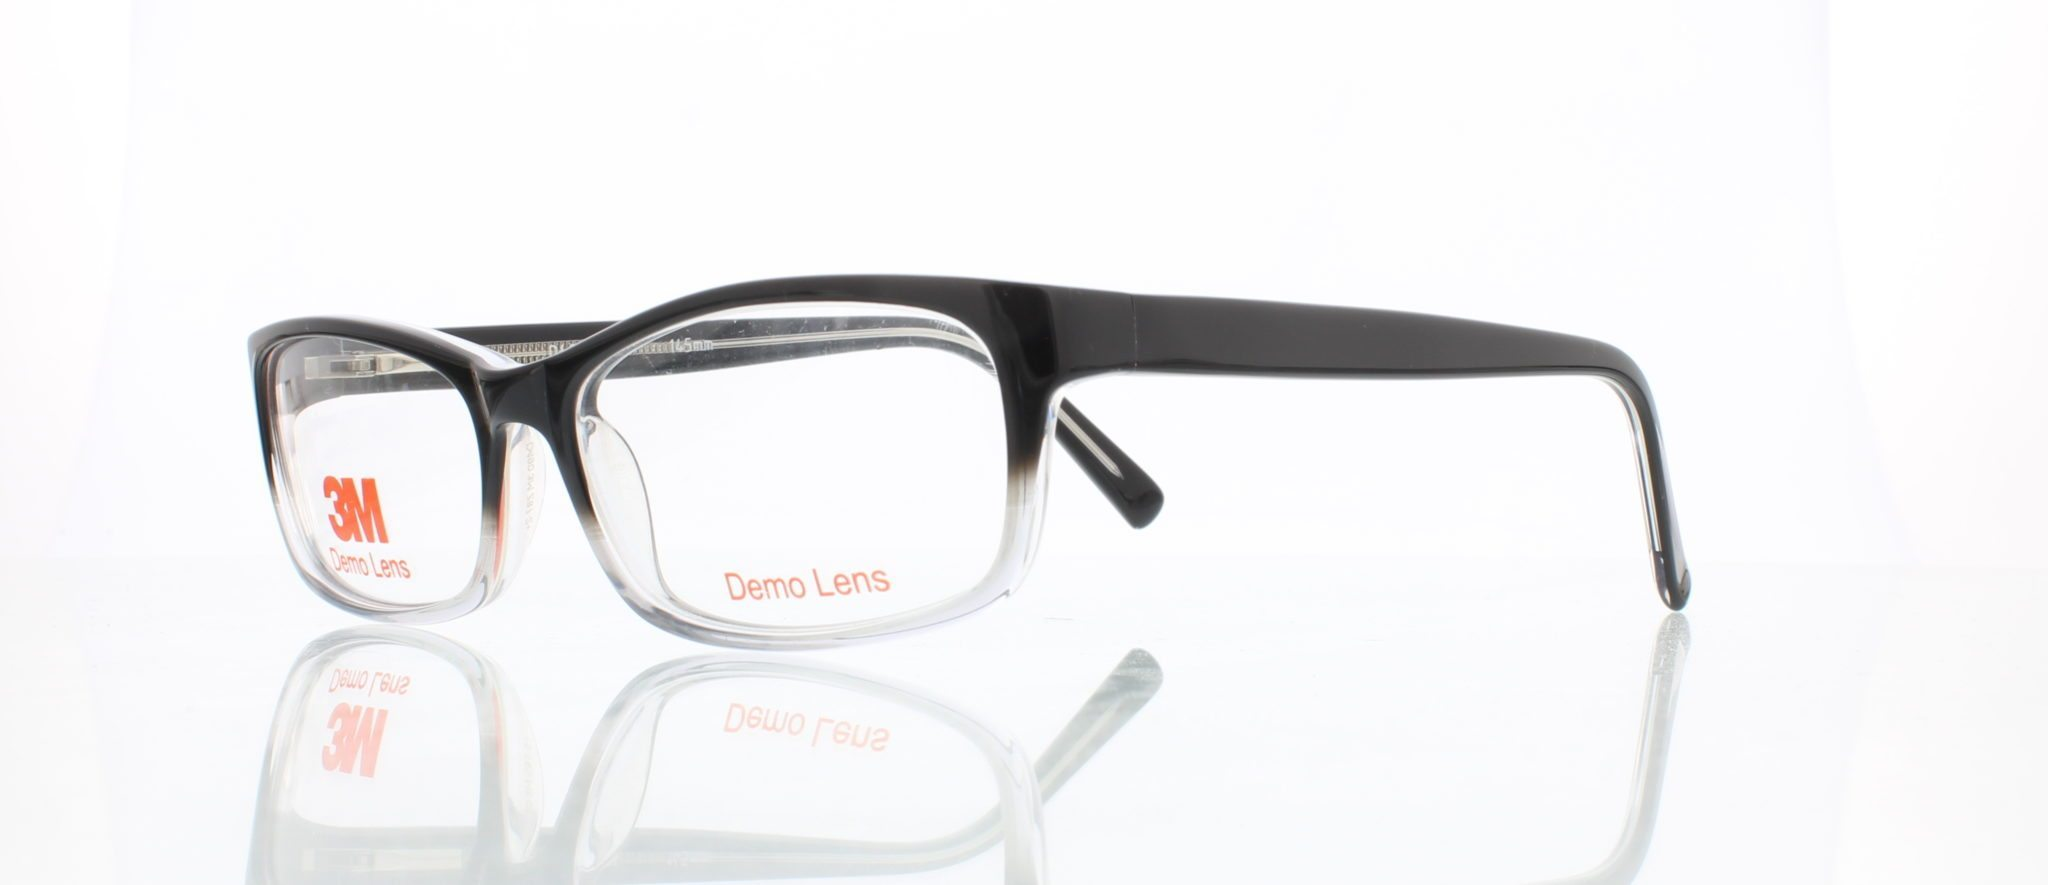 Ansi Rated Safety Glasses